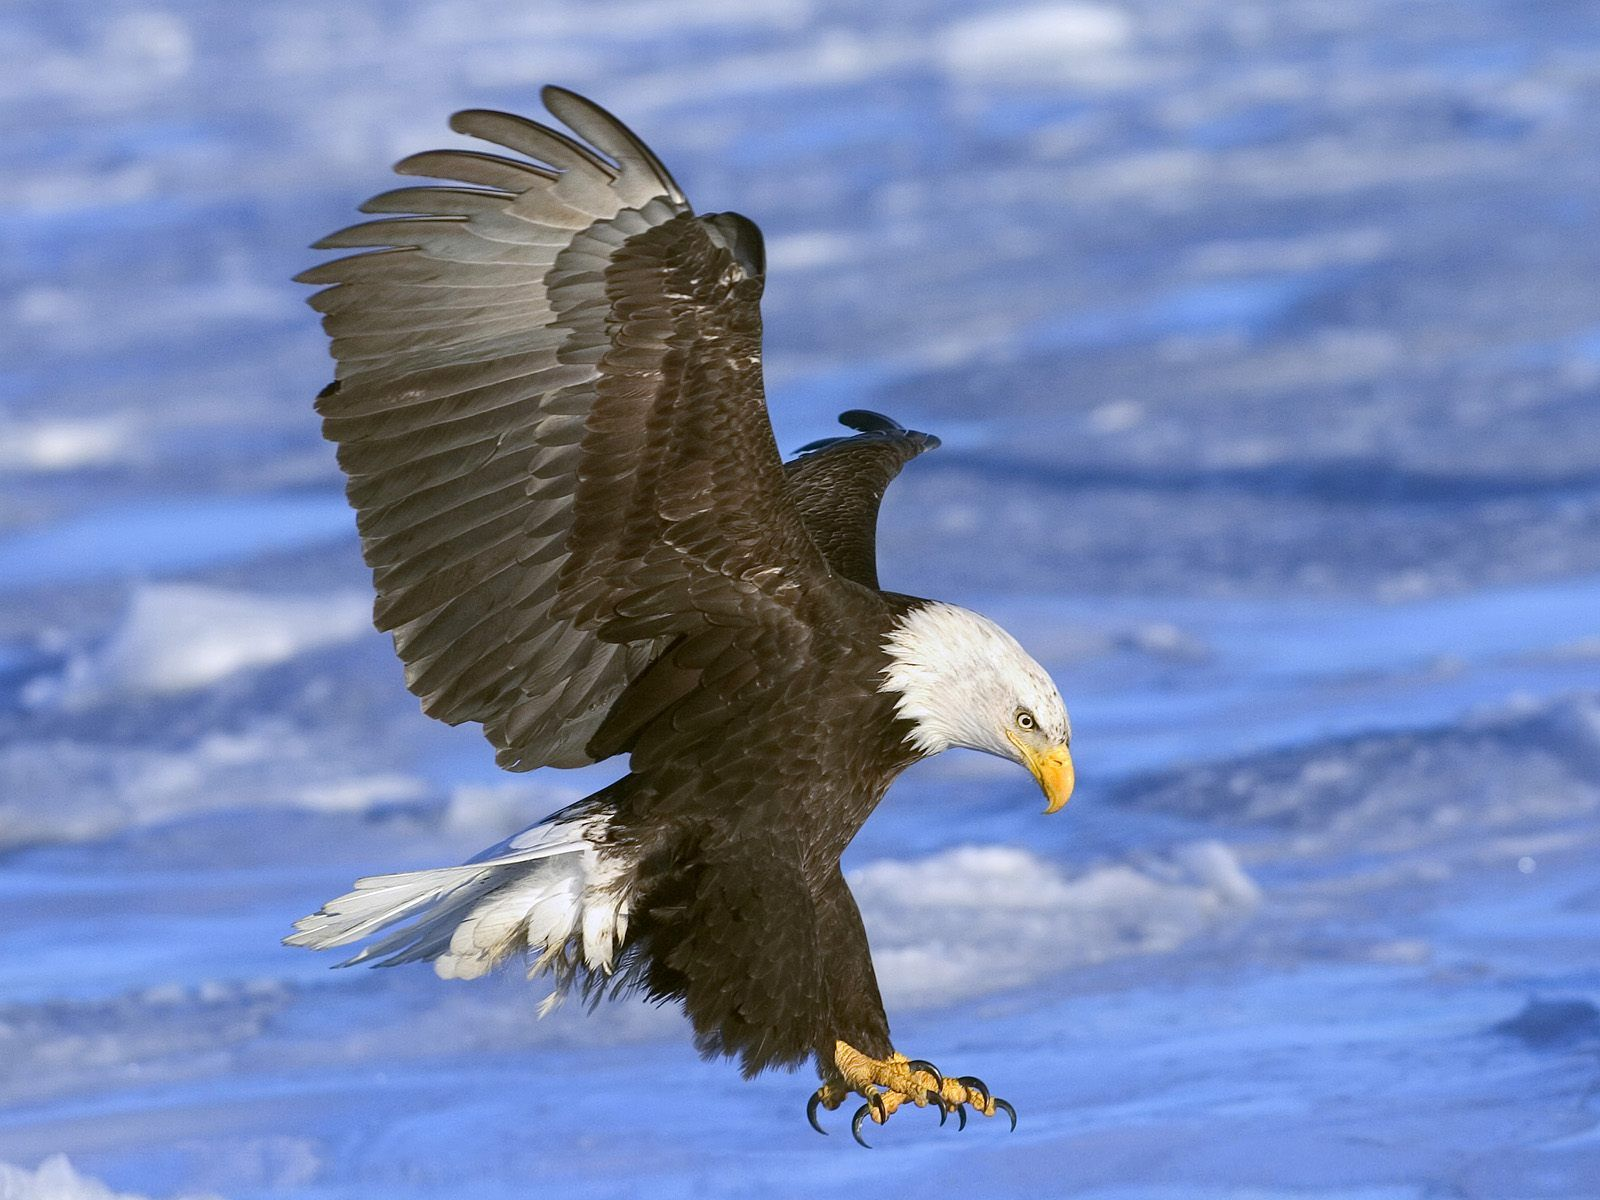 bald eagle wallpaper hd 001